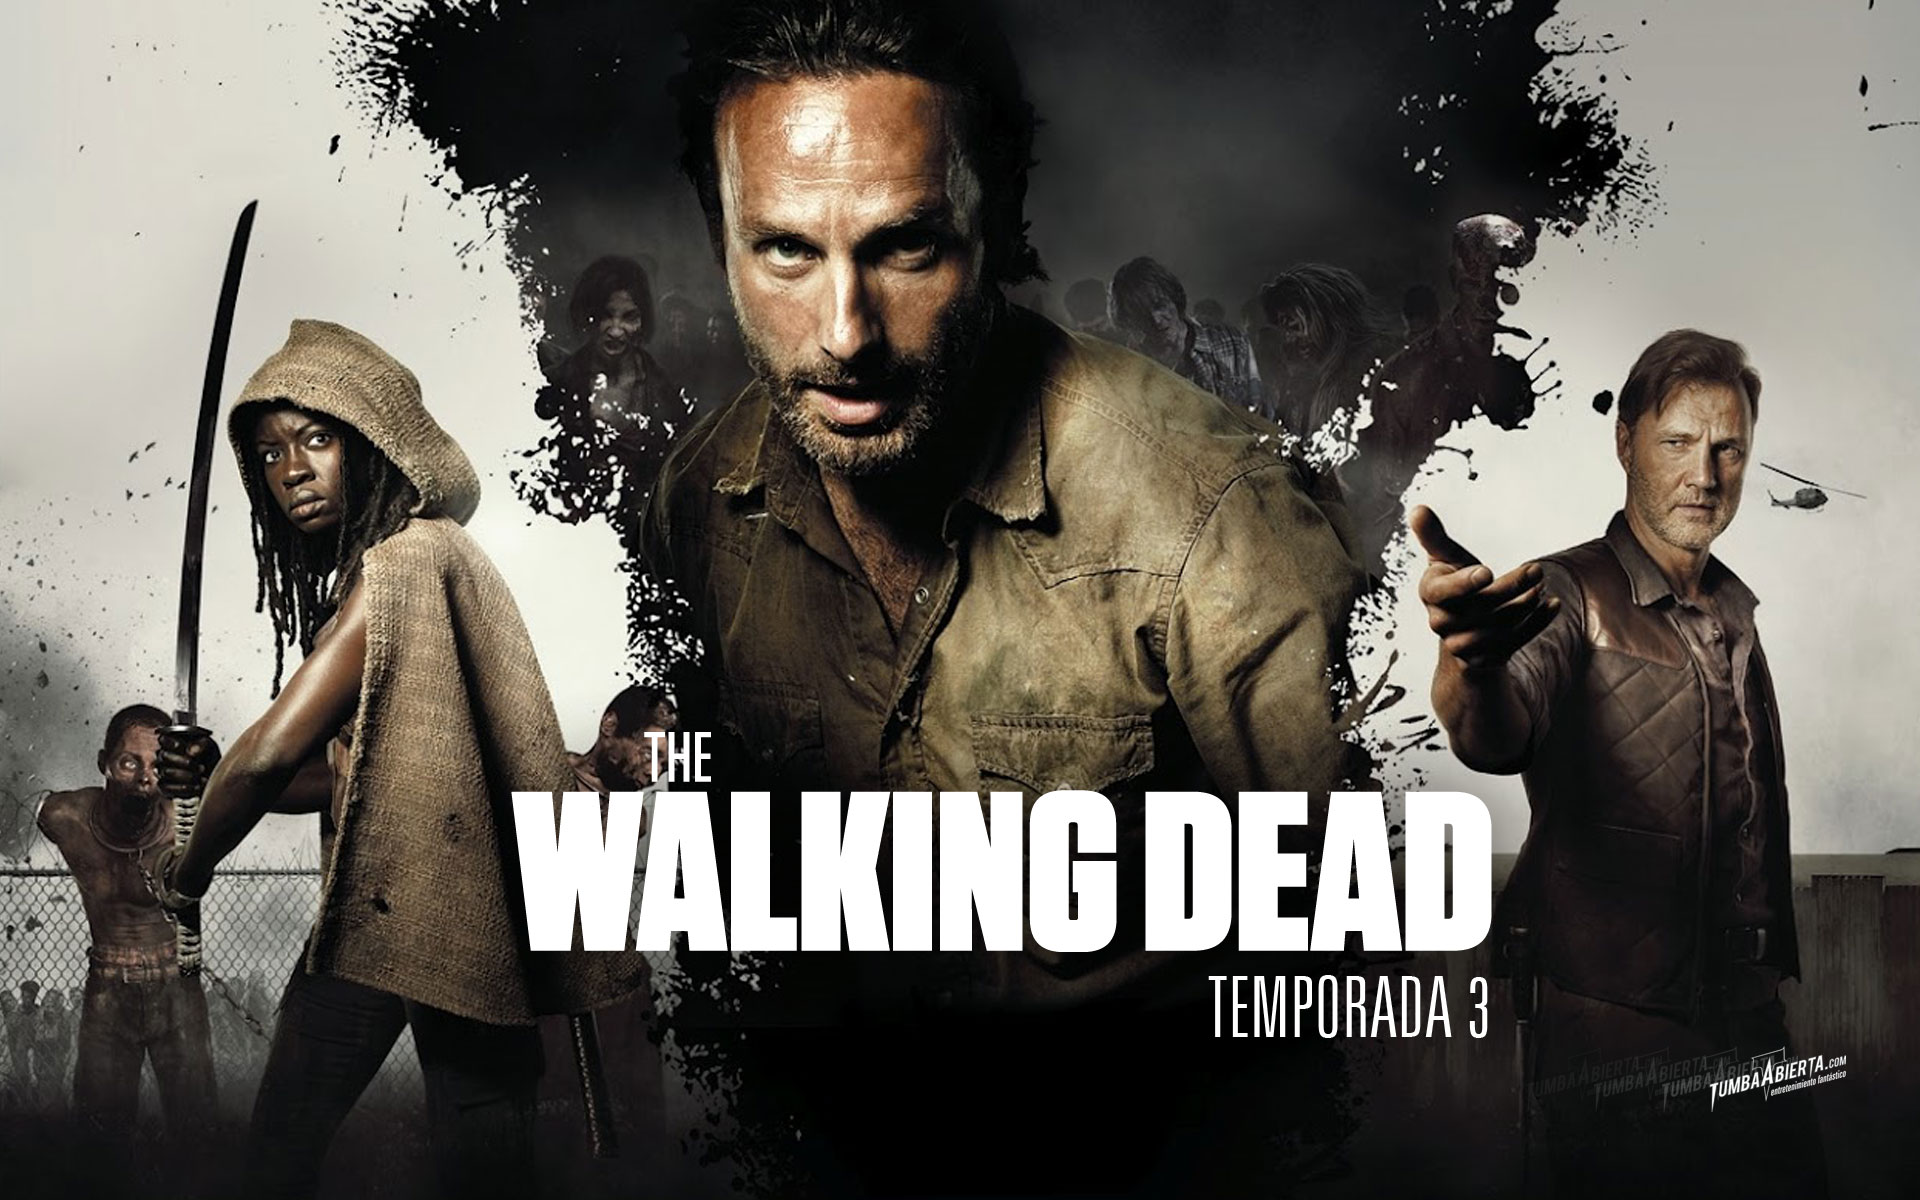 The Walking Dead Season 3 Wallpaper